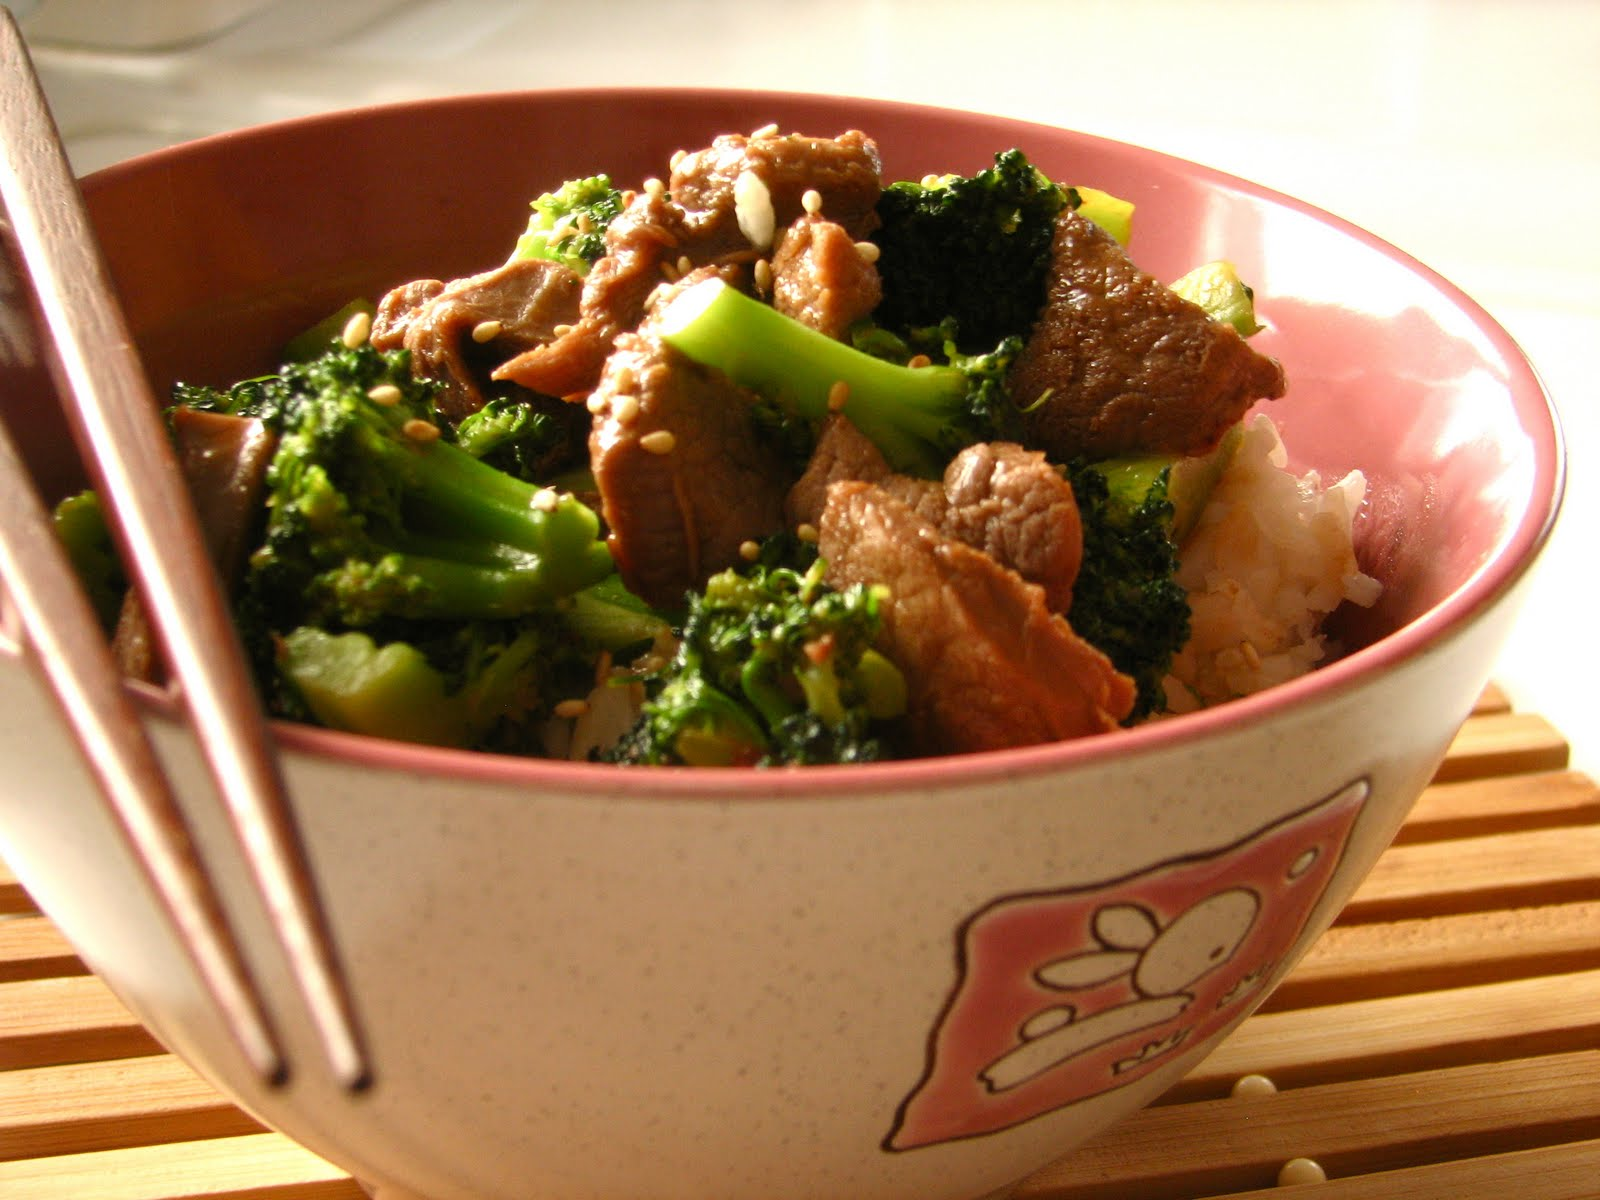 Venison and Broccoli stirfry